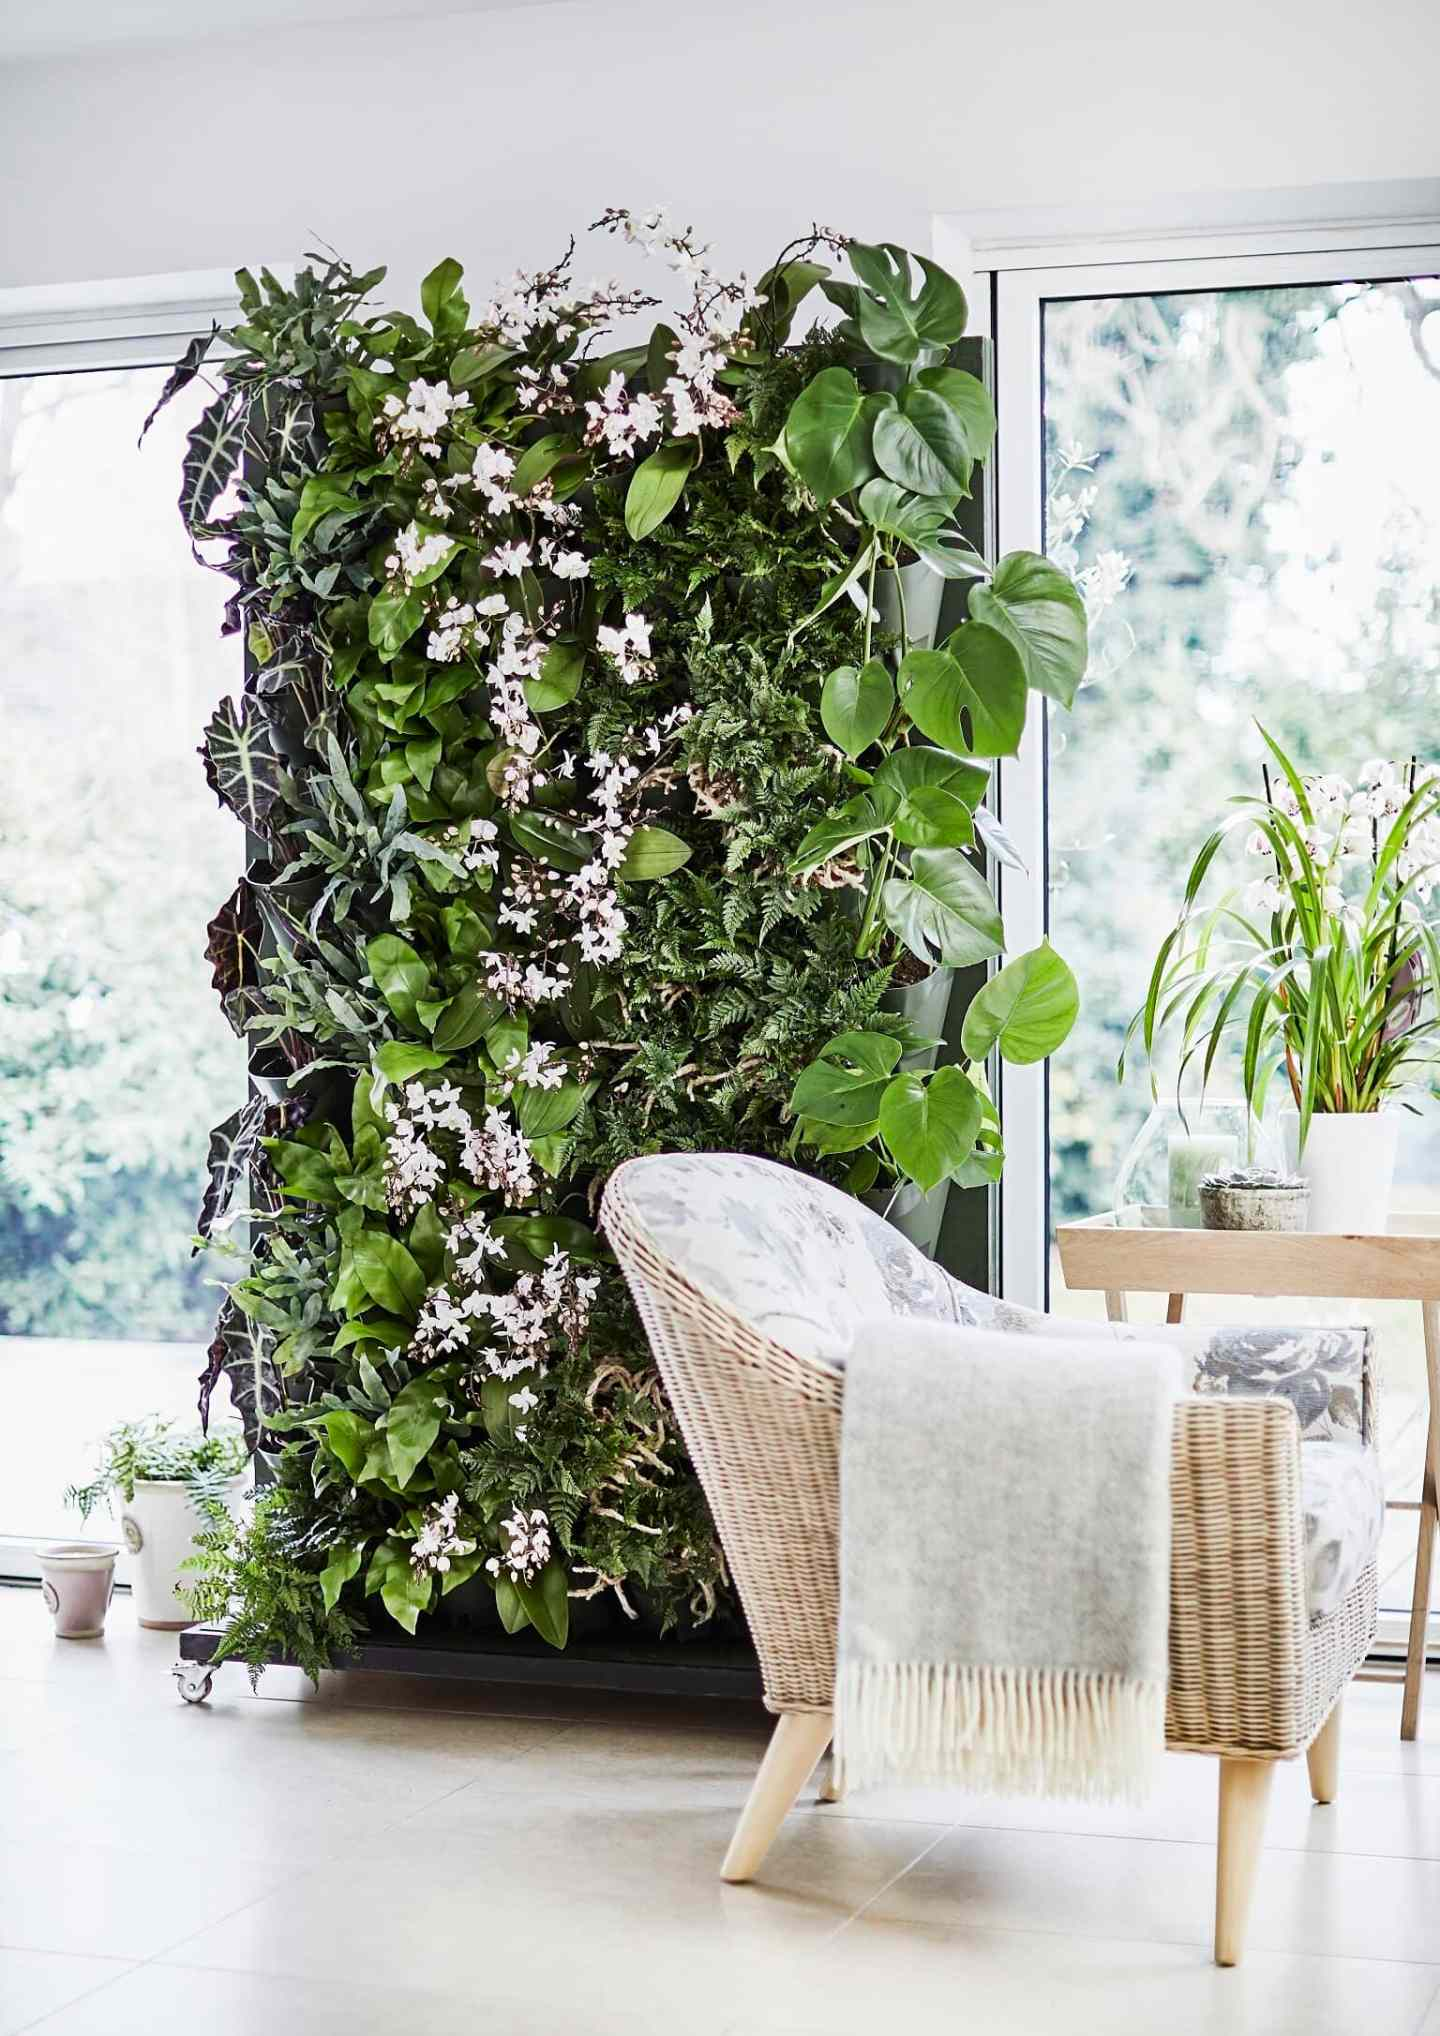 interior, interiors, interior design, interior design trends, trends, 2020, 2020 trends, rattan, faces, jewel tones, ribbed furniture, design, colours, colors, colour trends, living wall, houseplant